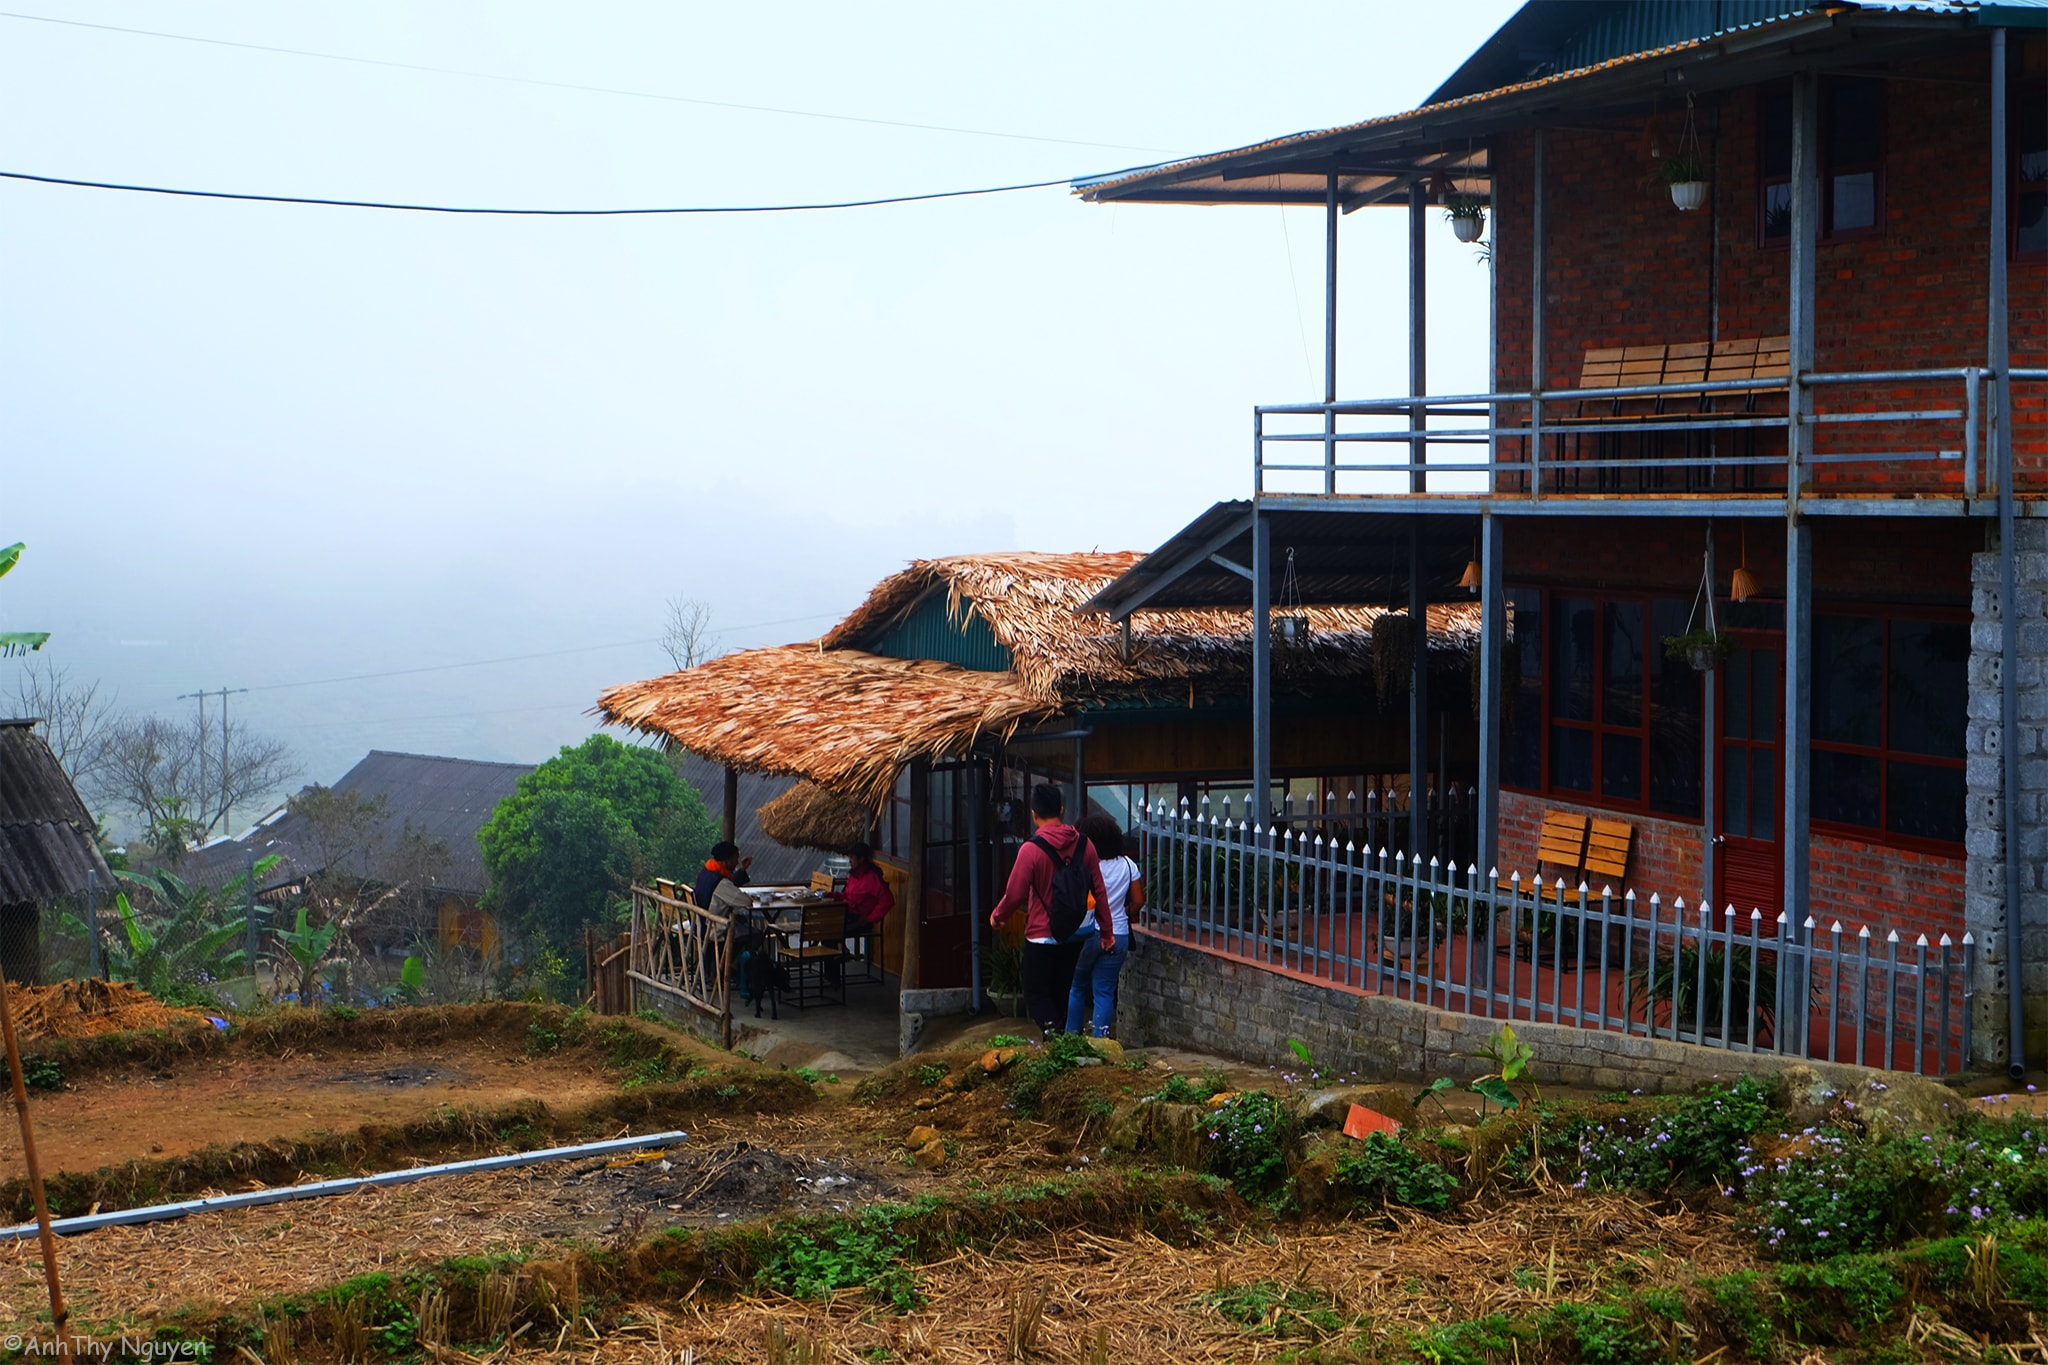 Sapa Travel - Sapa homestay - H'Mong the hills - where to stay in Sapa